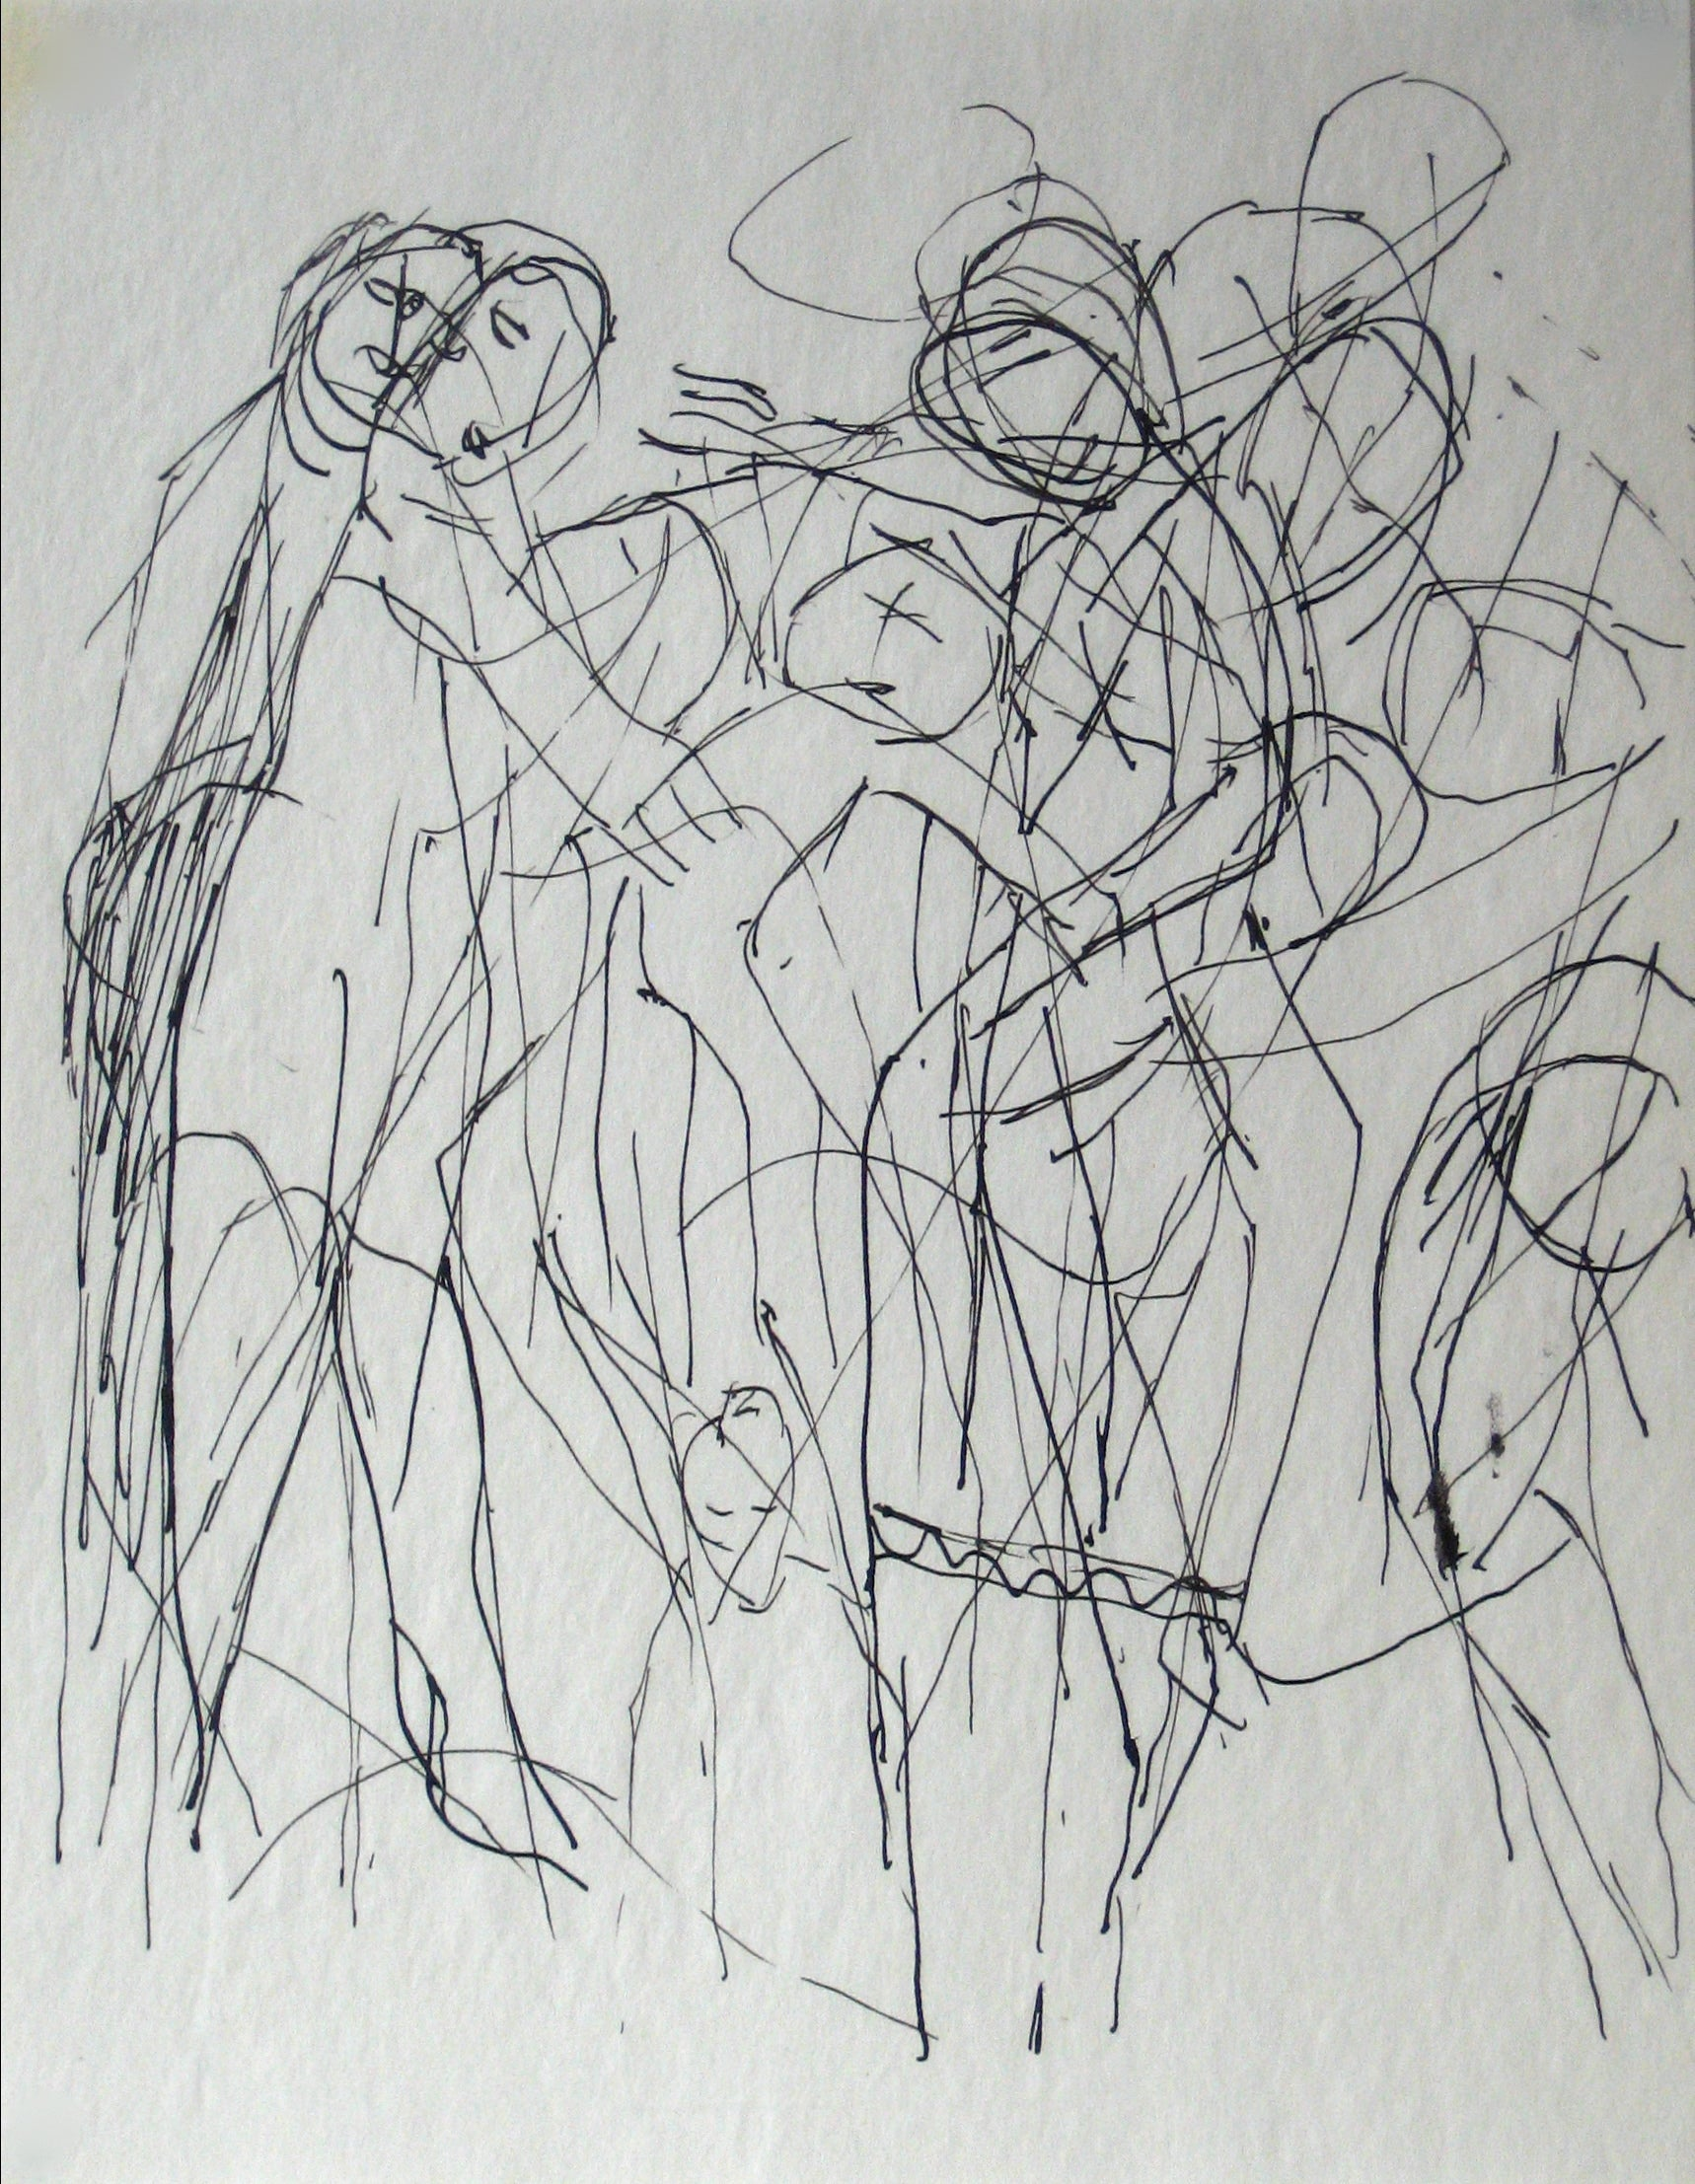 Sketch of Multiple Abstracted Figures <br>Early-Mid 20th Century Ink on Paper <br><br>#13580